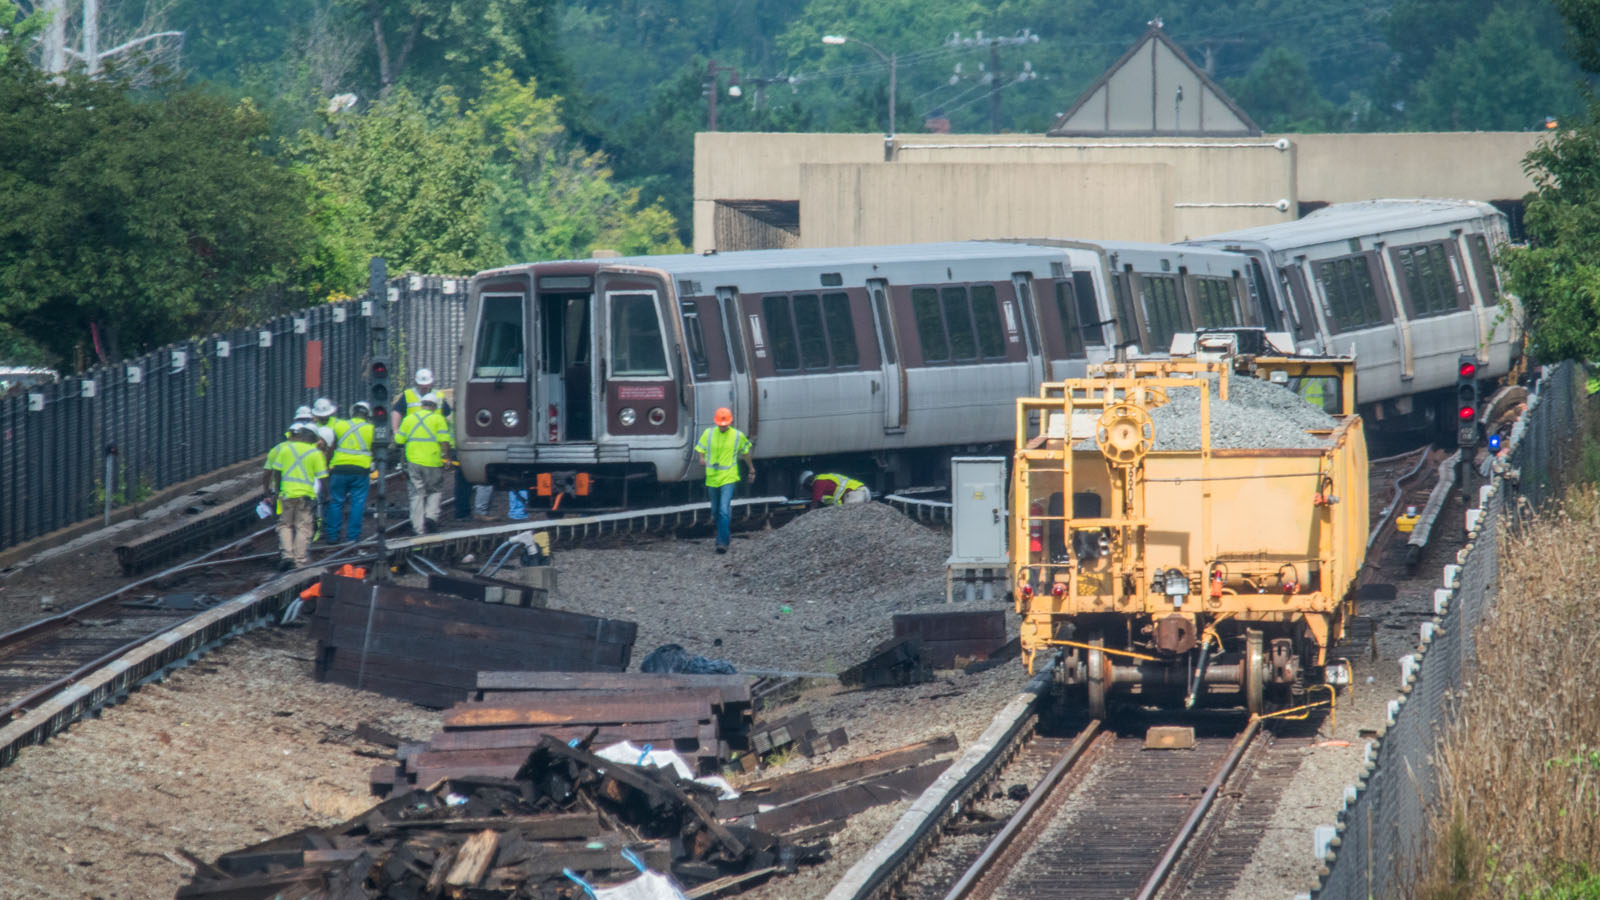 Photos of Metro derailment reveal history of troubled ...